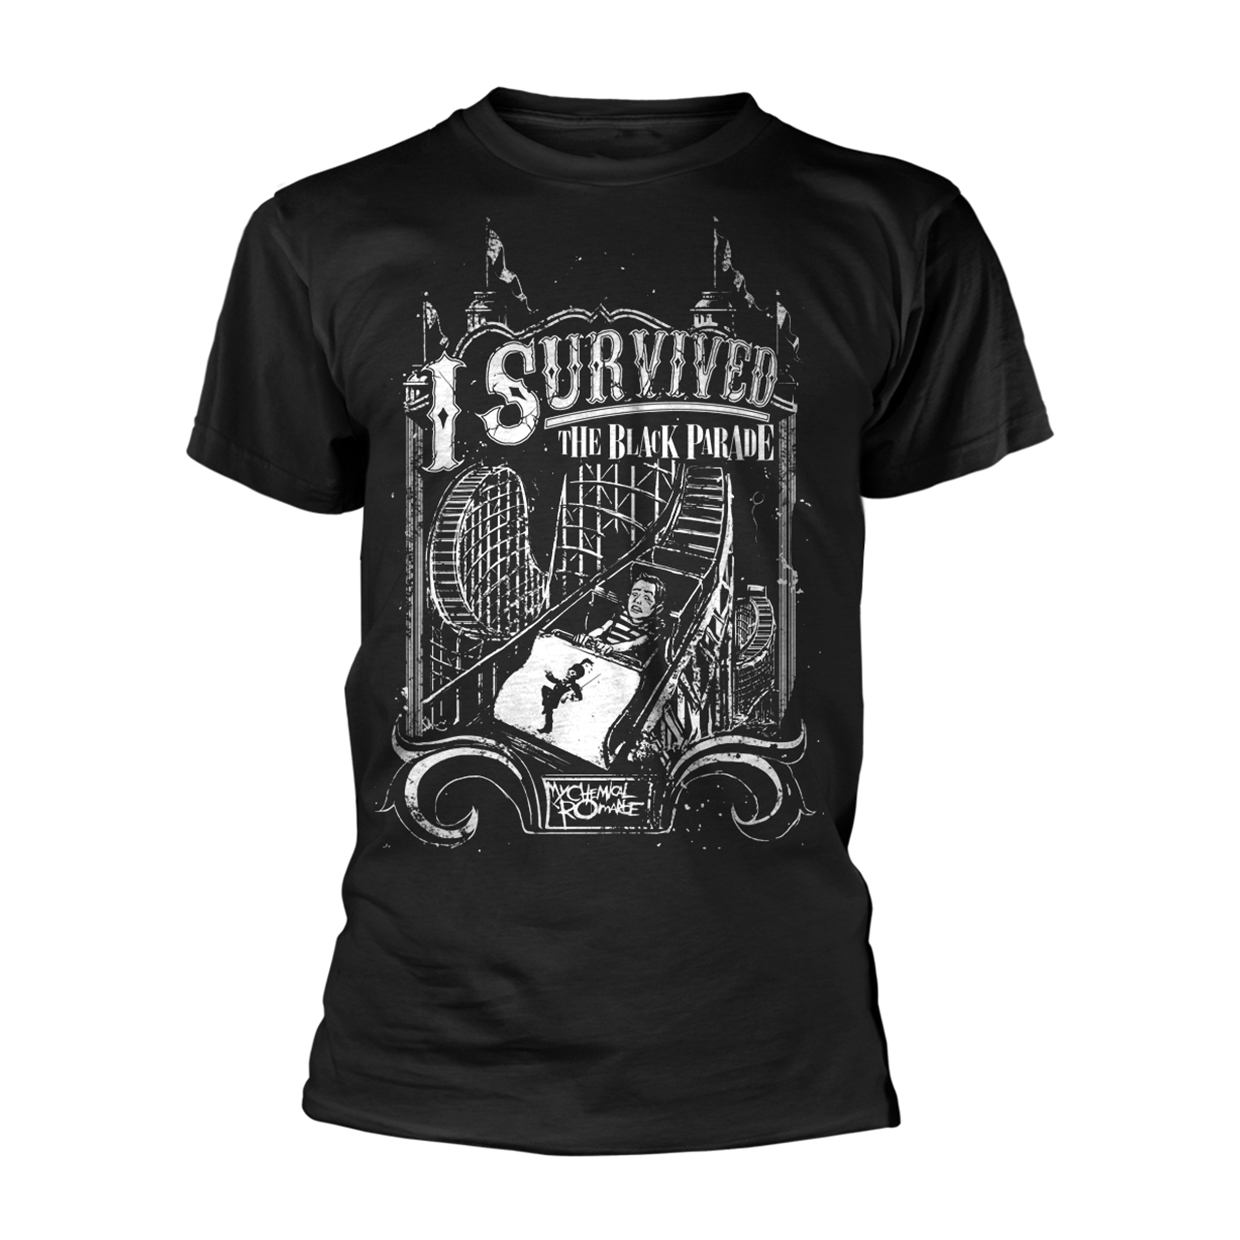 I Survived - My Chemical Romance - Merchandise - PHM - 0803343163957 - 17/7-2017